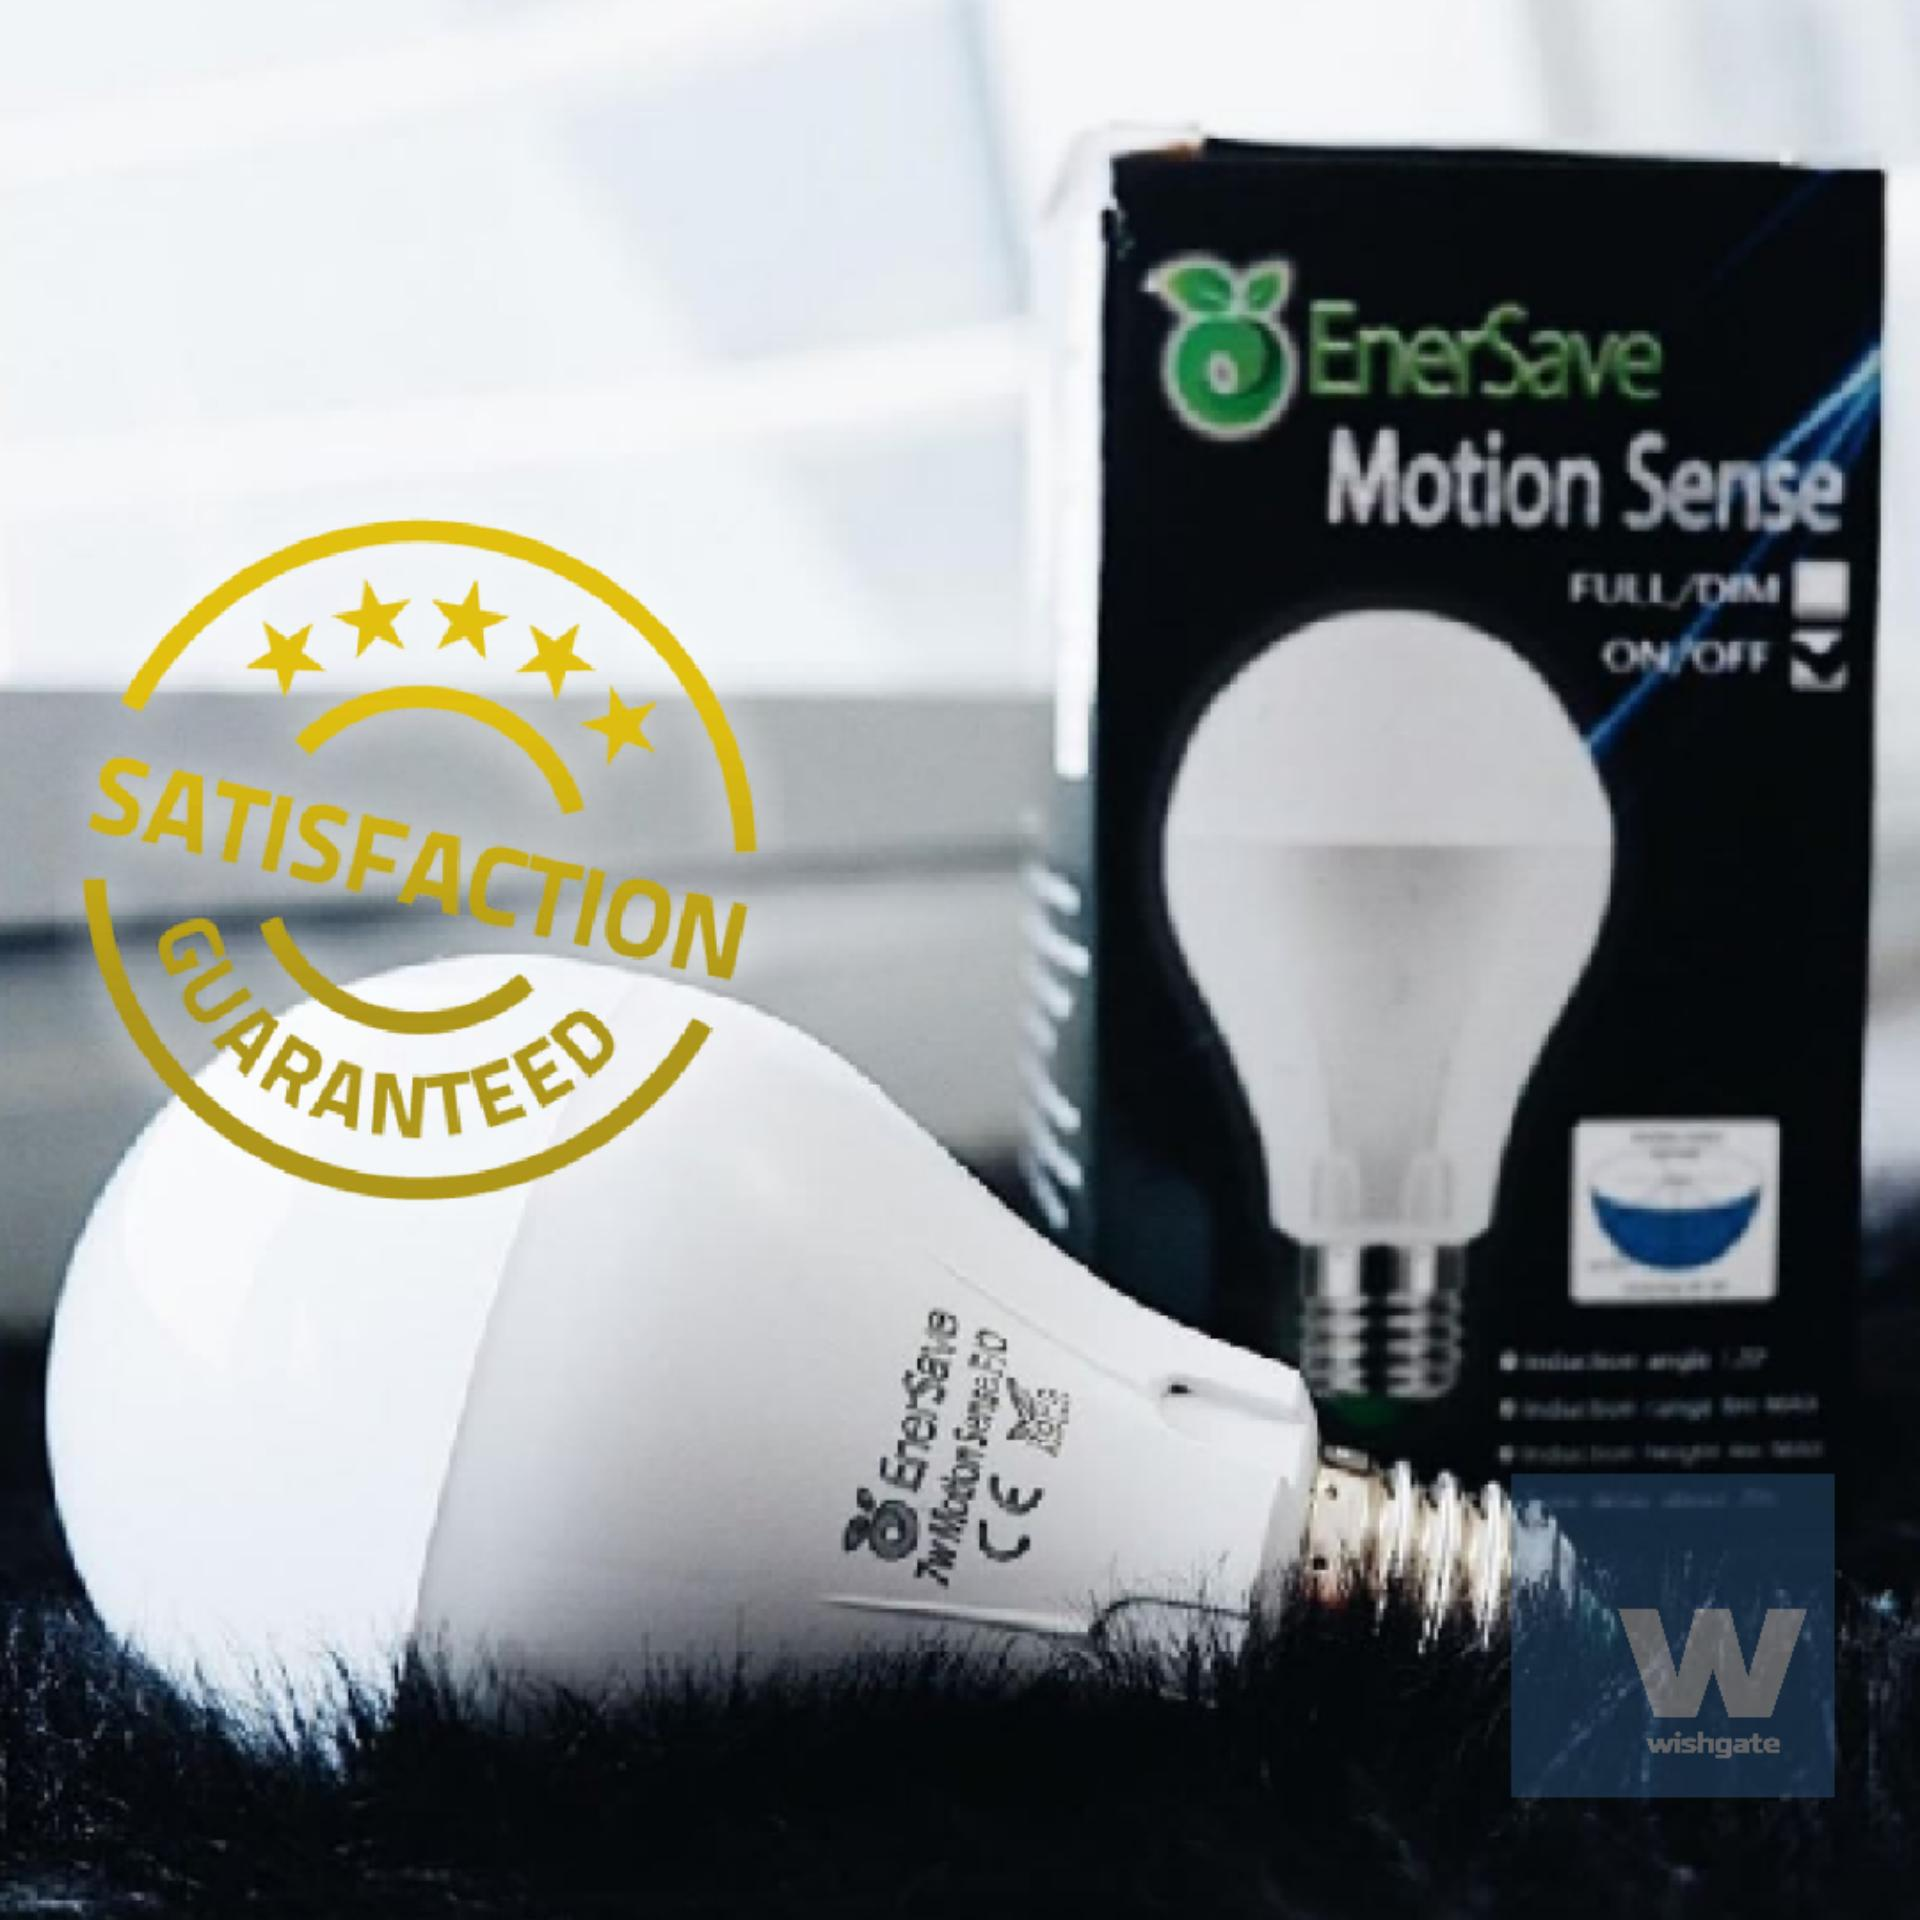 Light Bulbs For Sale Led Prices Brands Review In 220v Ac Lamp Touch Dimmer Wishgate Enersave Motion Sense Fd Bulb Automatic Dim Mode 2w Then Brightens